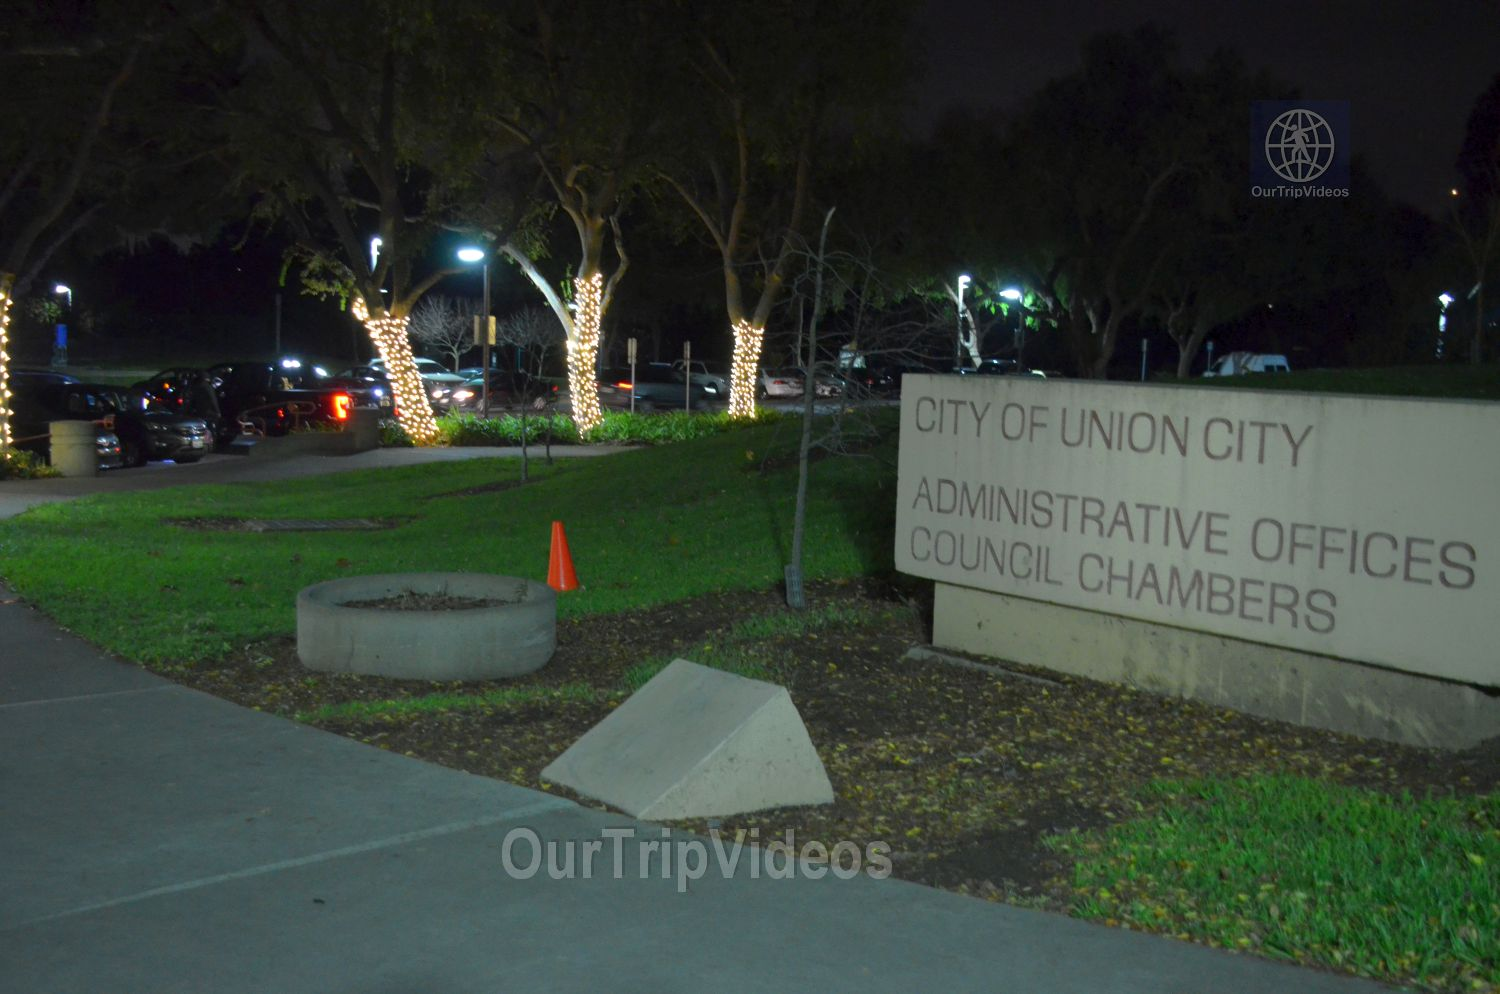 Trees of Angels Celebrations by WHHS, Union City, CA, USA - Picture 21 of 25